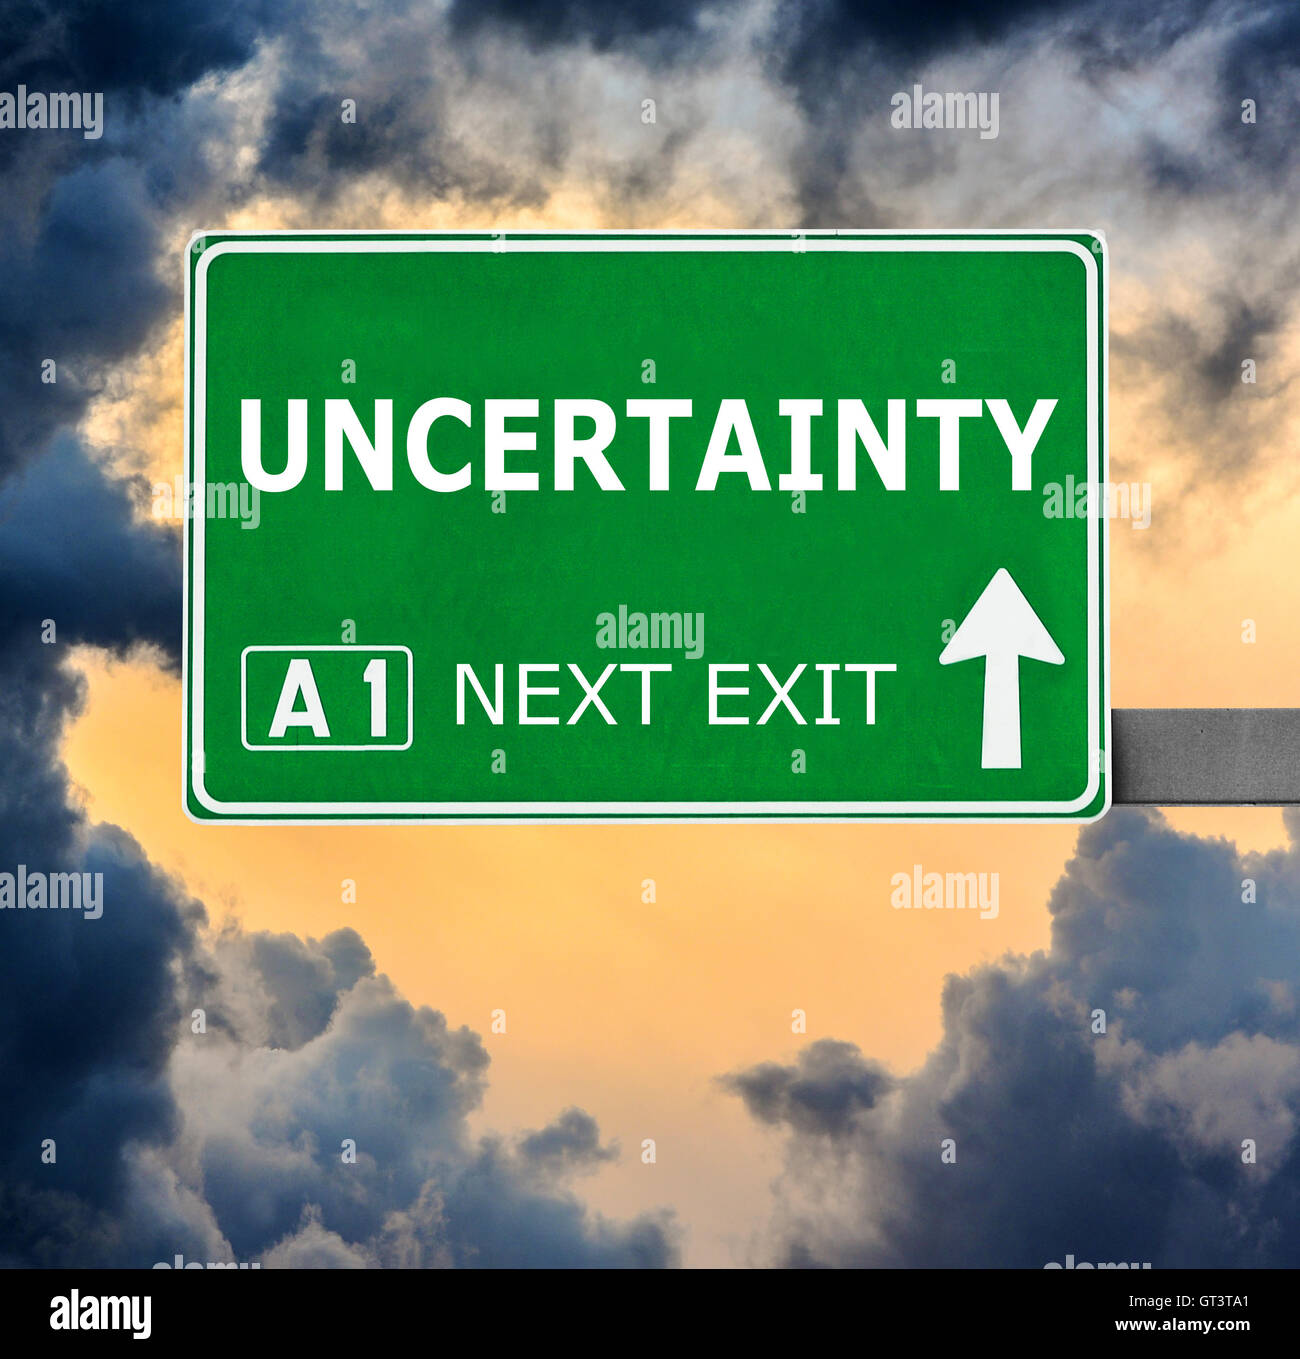 UNCERTAINTY road sign against clear blue sky Stock Photo